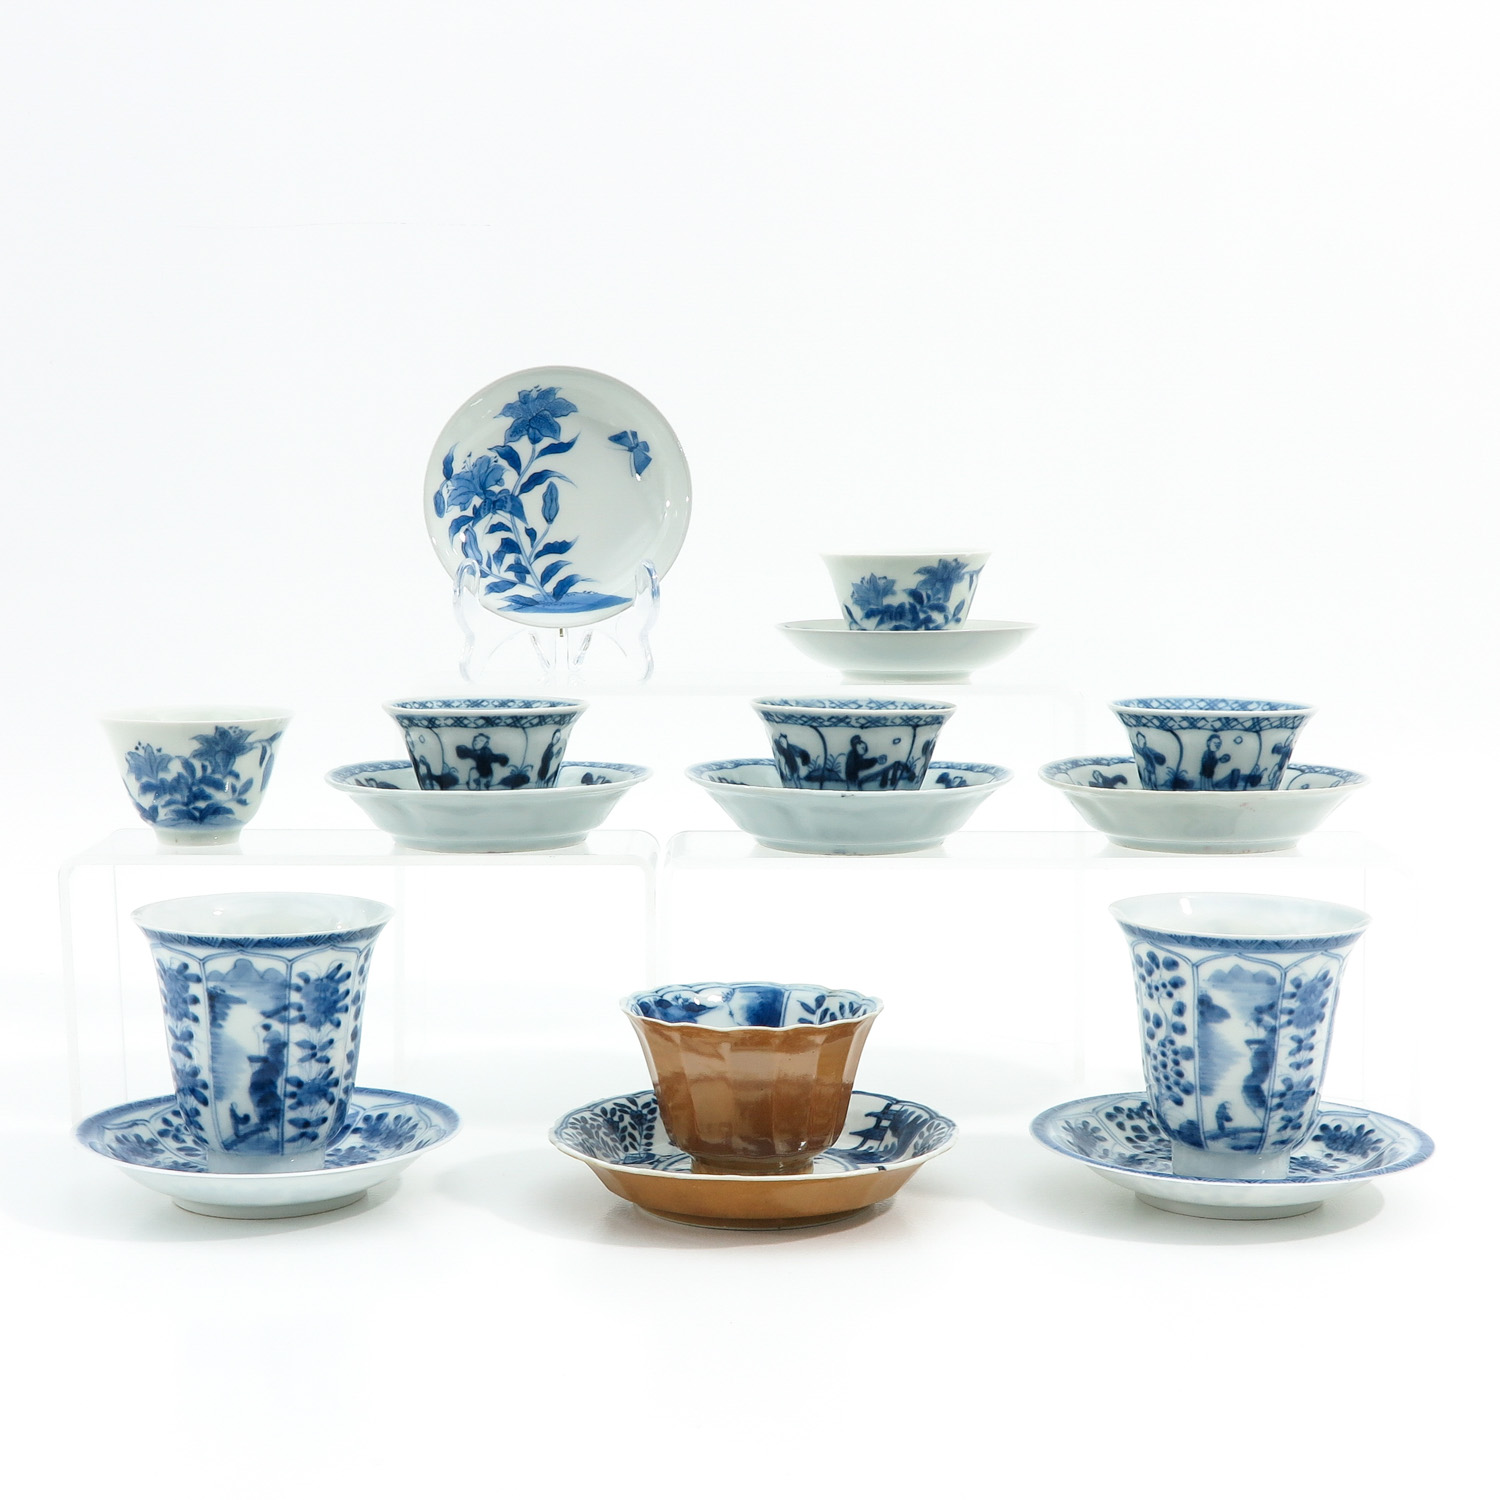 A Diverse Collection of Cups and Saucers